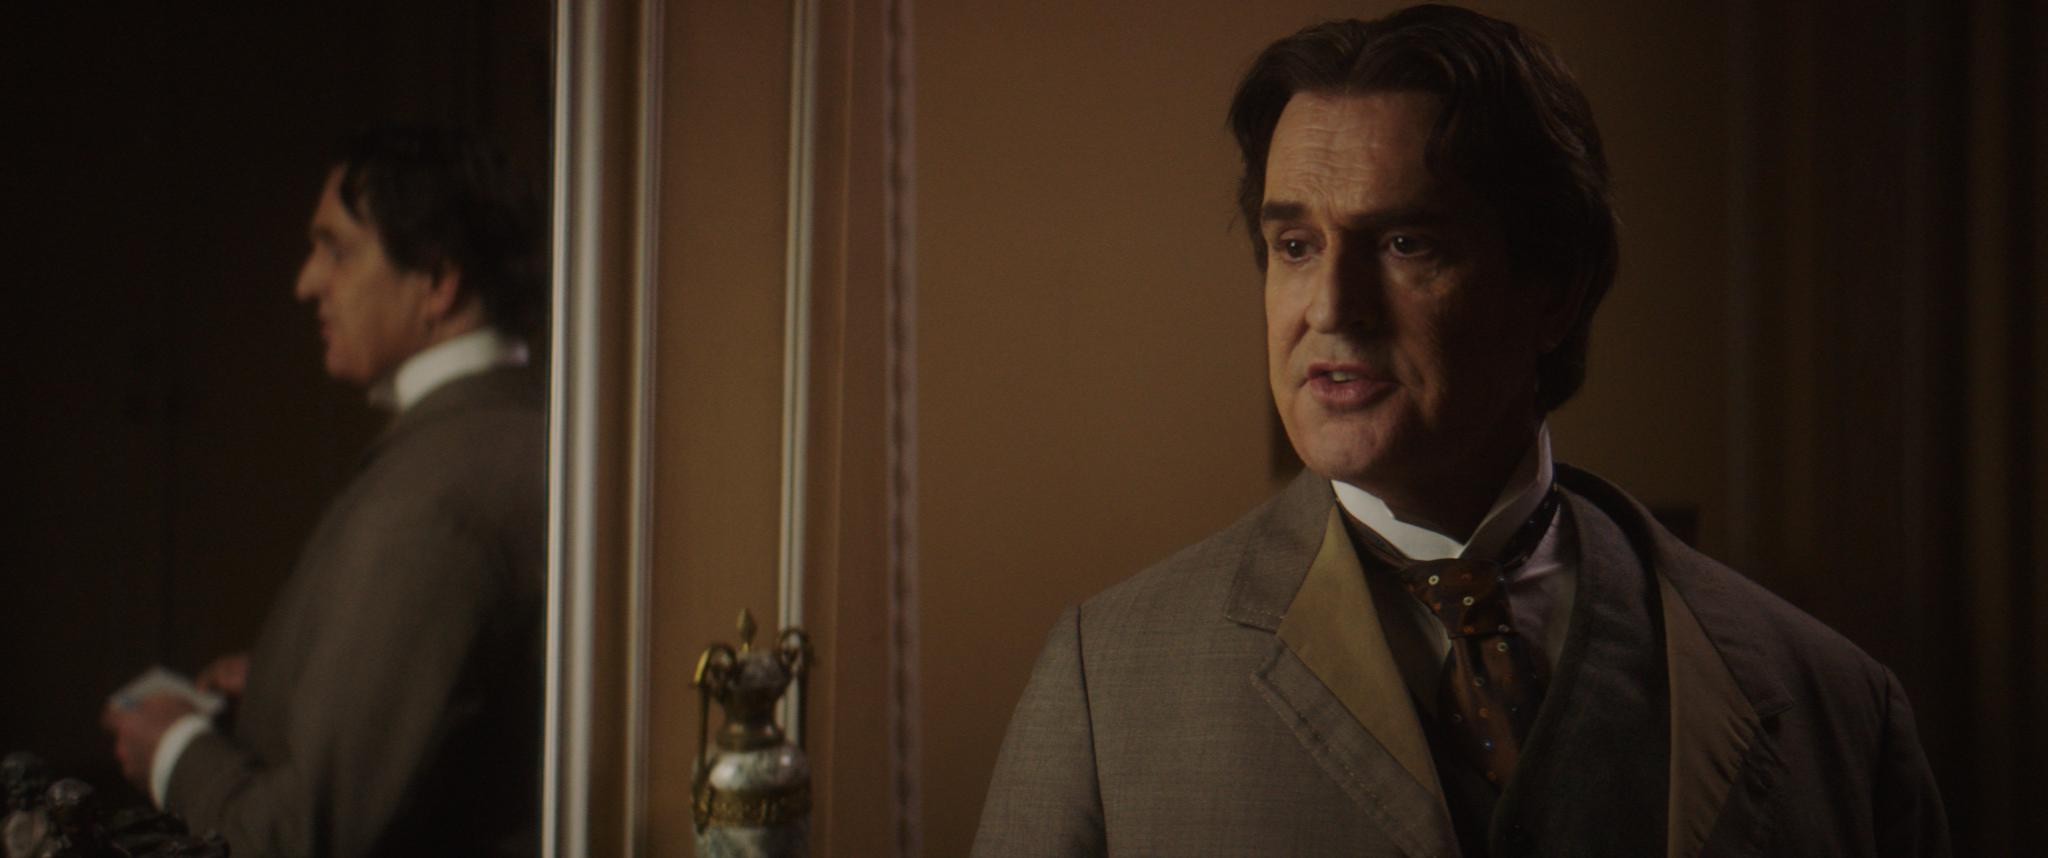 happy prince Fresh from the success of call me by your name, sony pictures classic has  picked up the rights to rupert everett's directorial debut the.